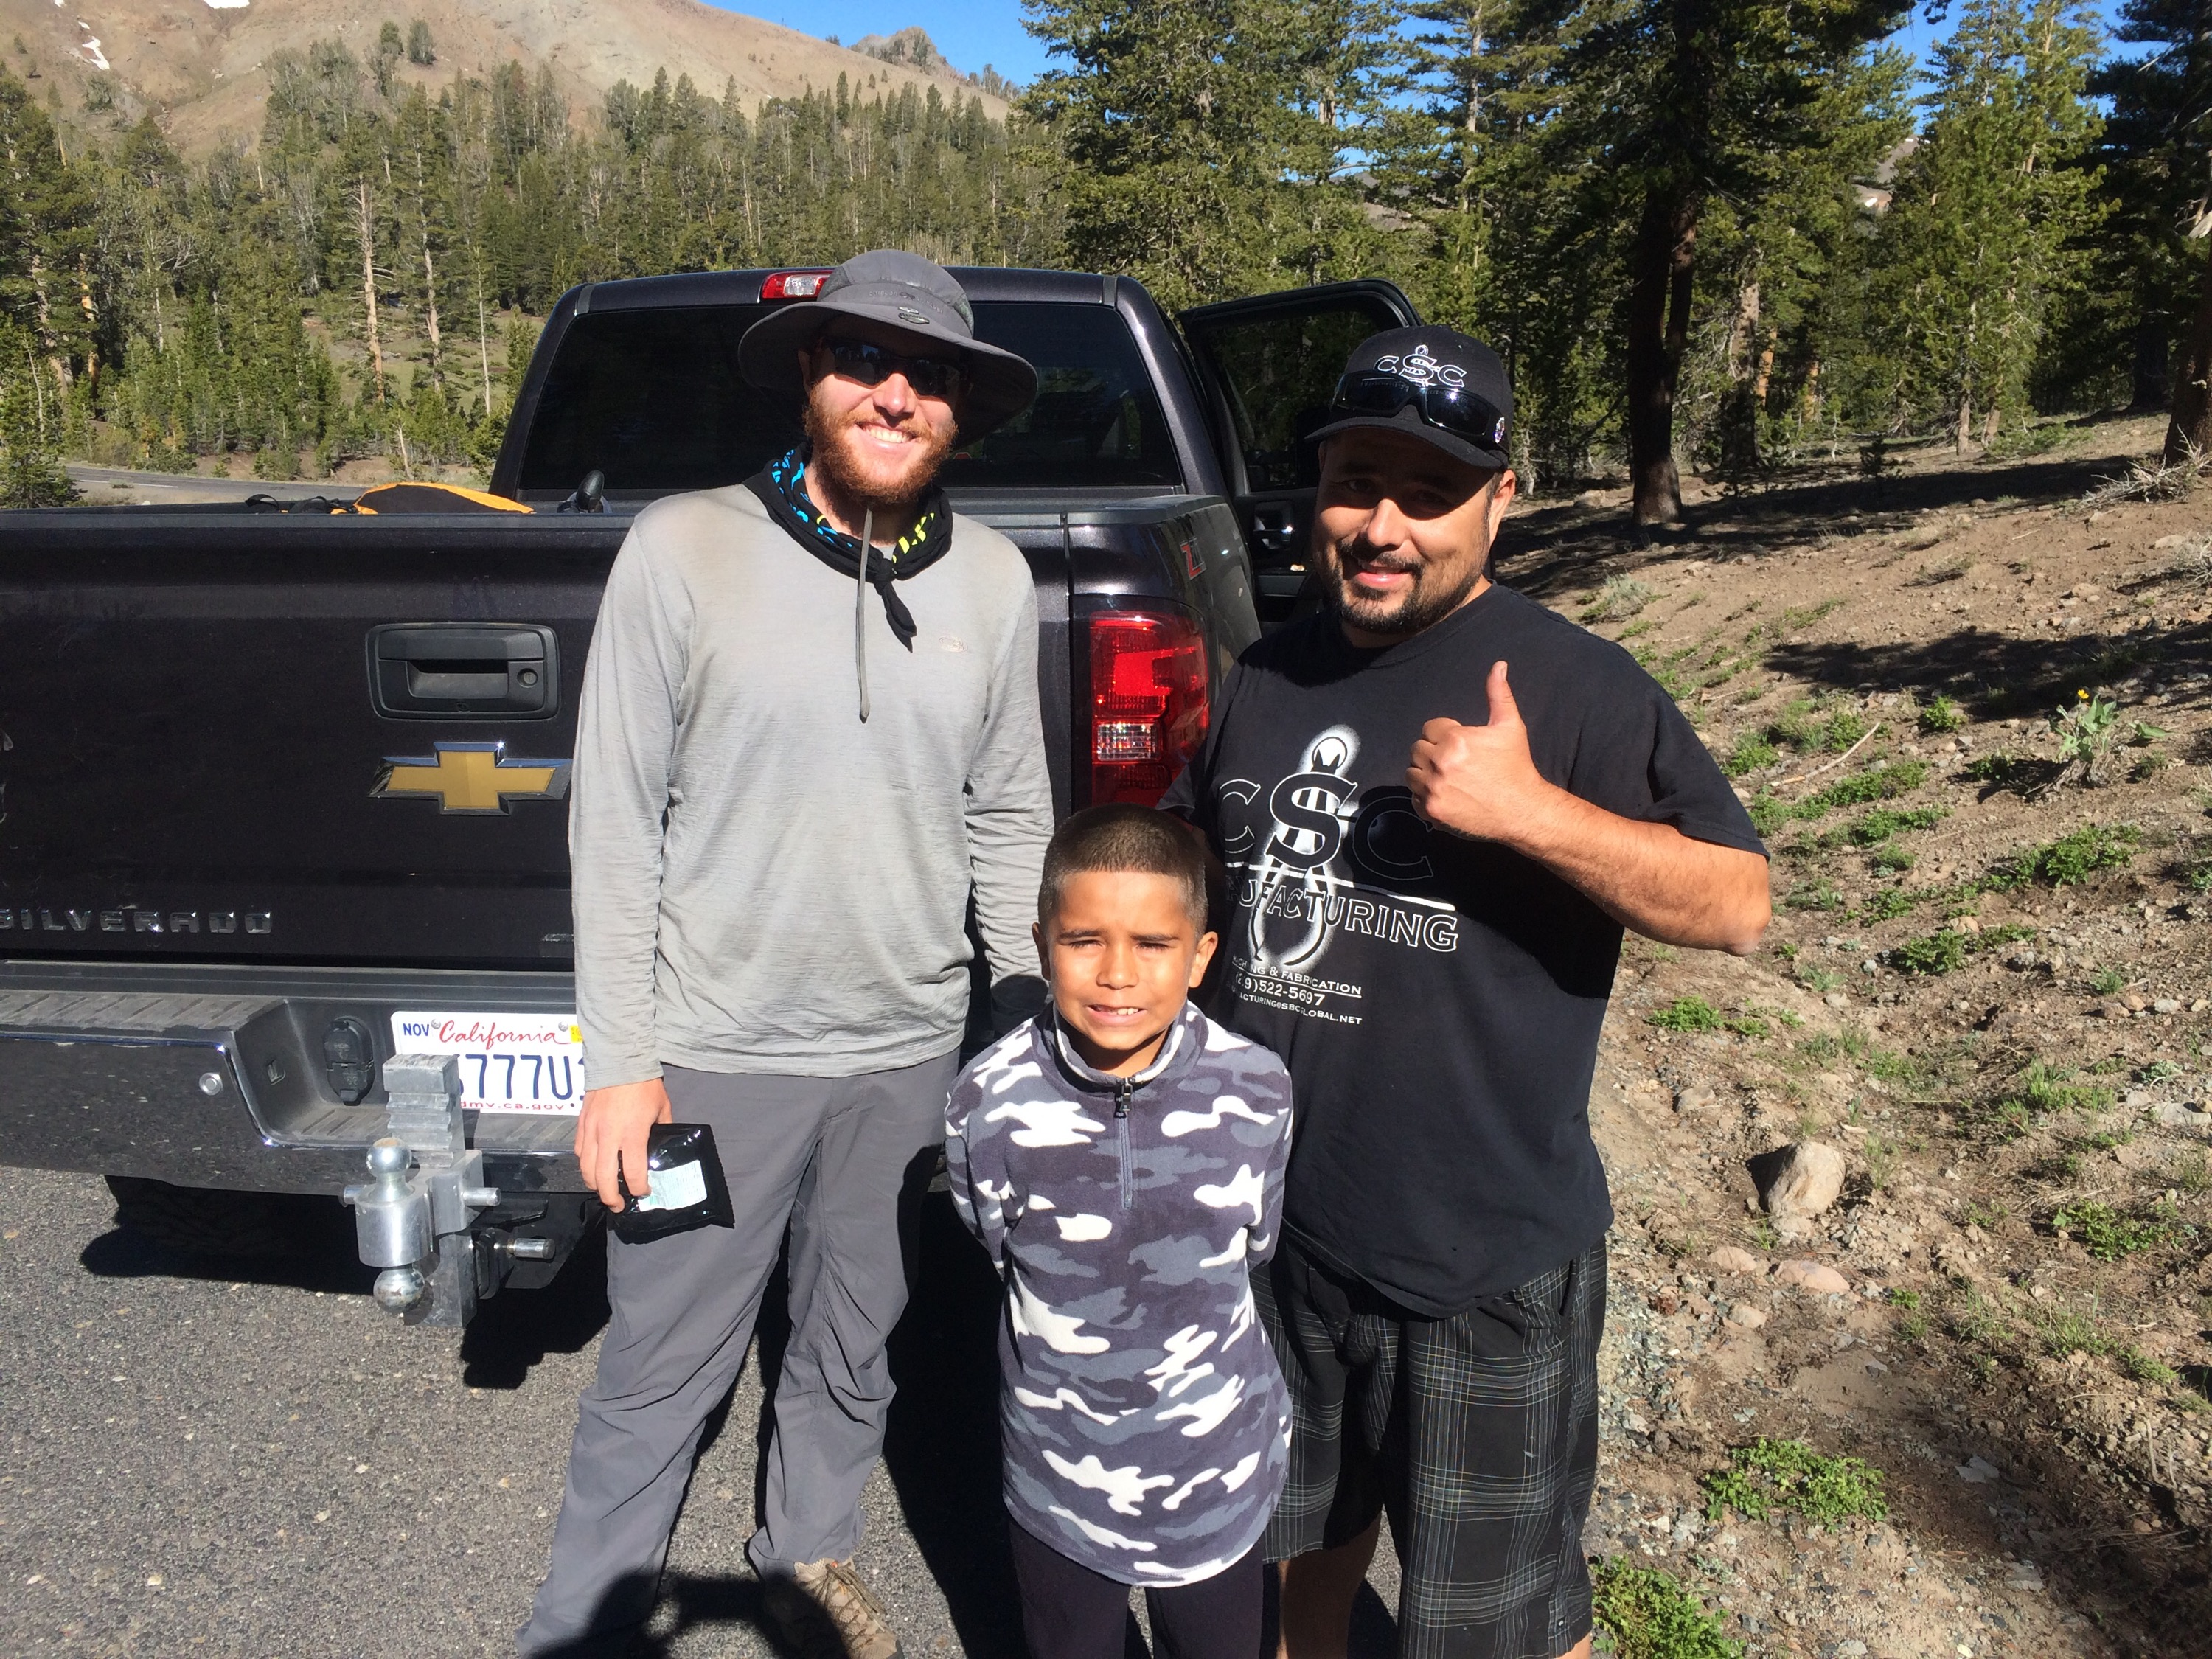 Me with Chris and his son as they dropped us off back at the trail after North Kennedy Meadows, such cool people!